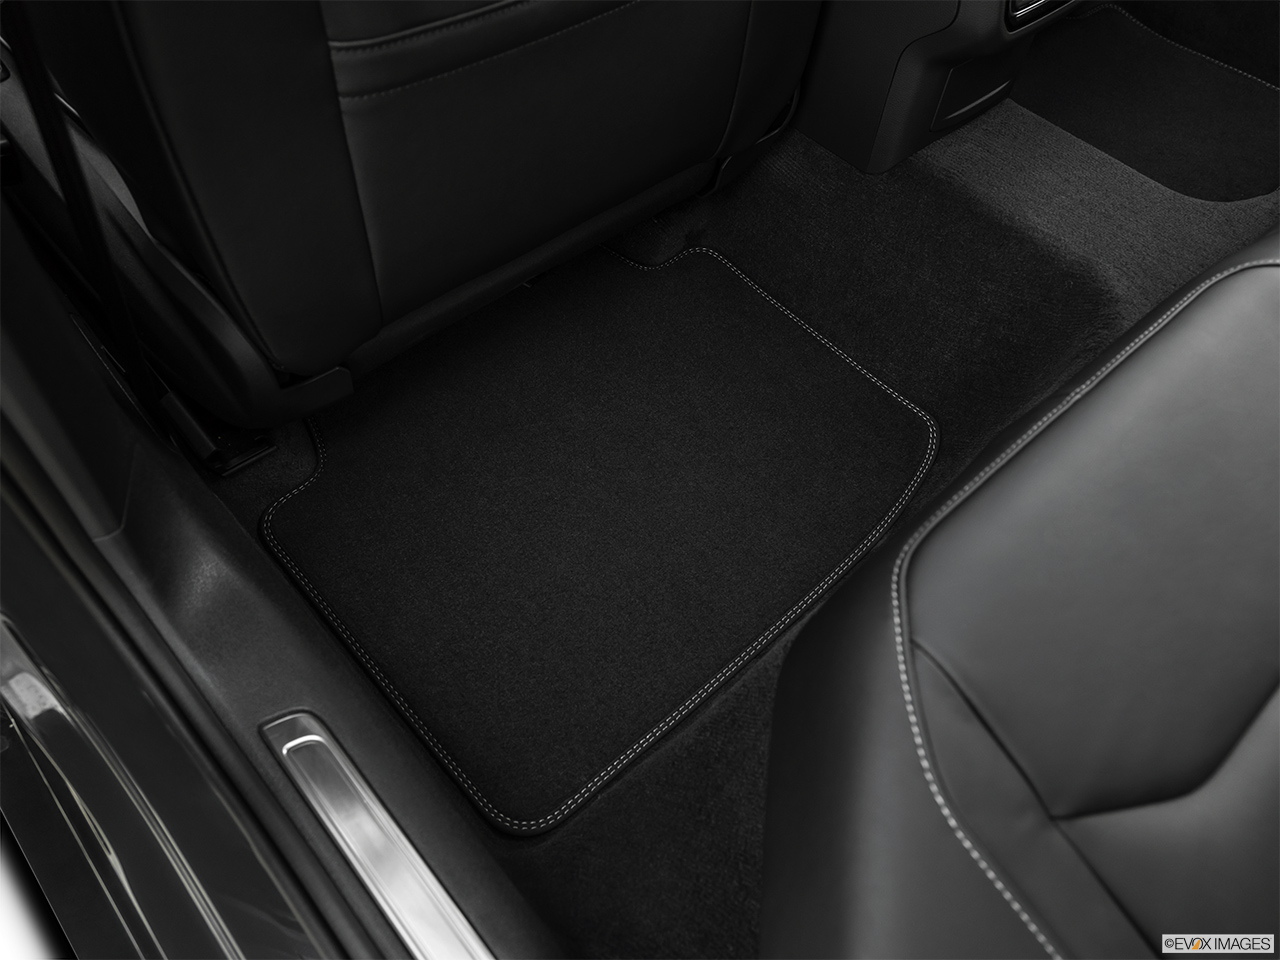 2019 Volkswagen Arteon SEL Premium  R-Line Rear driver's side floor mat. Mid-seat level from outside looking in.